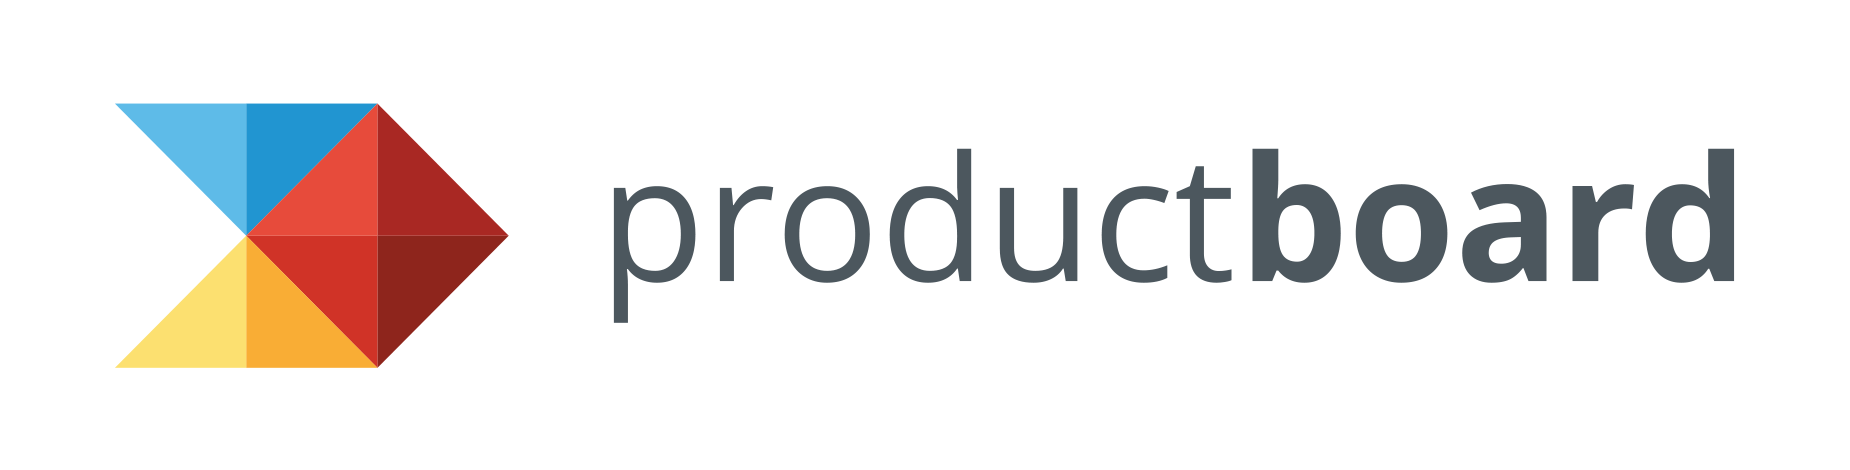 integrations/2017/productboard-logo.png